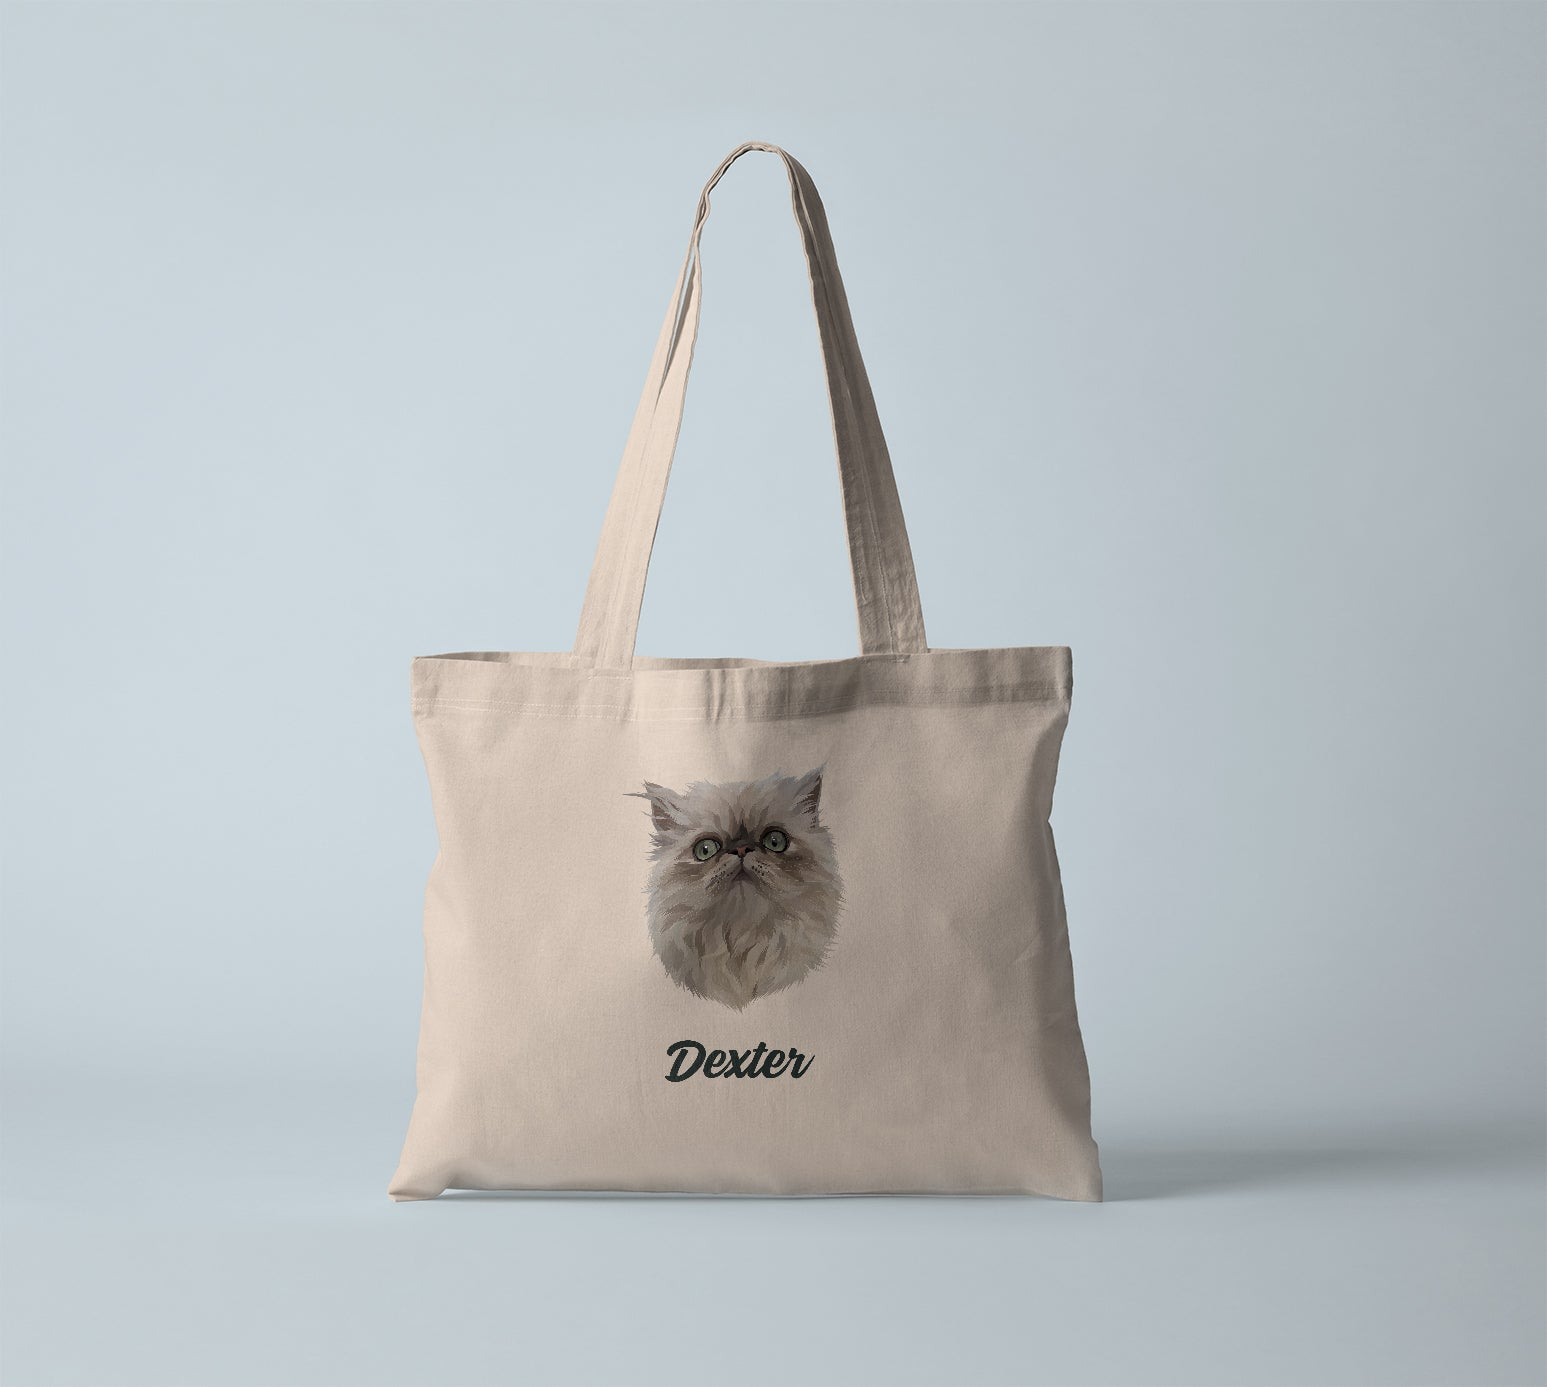 Canvas tote bag in natural tan, with personalized pet portrait of a cat with its name in black.